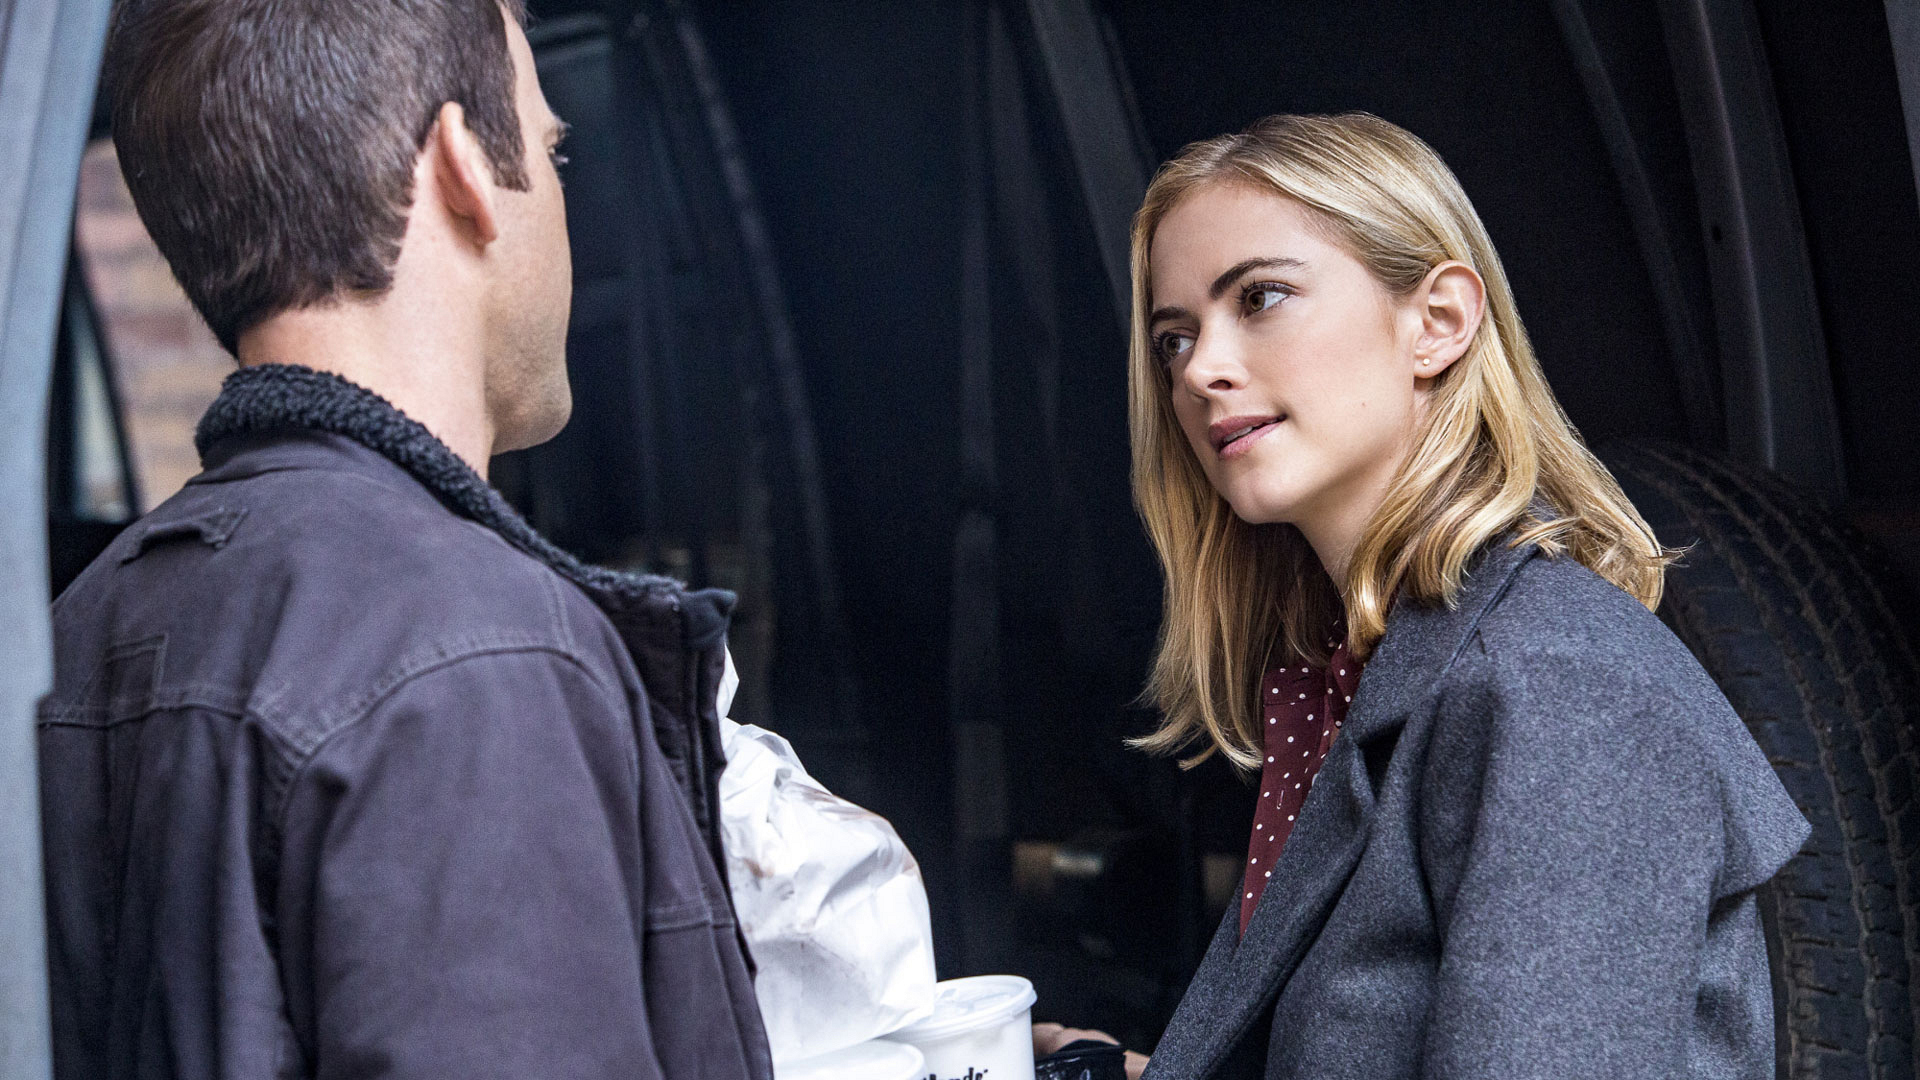 Christopher LaSalle as Lucas Black and Emily Wickersham as Agent Ellie Bishop